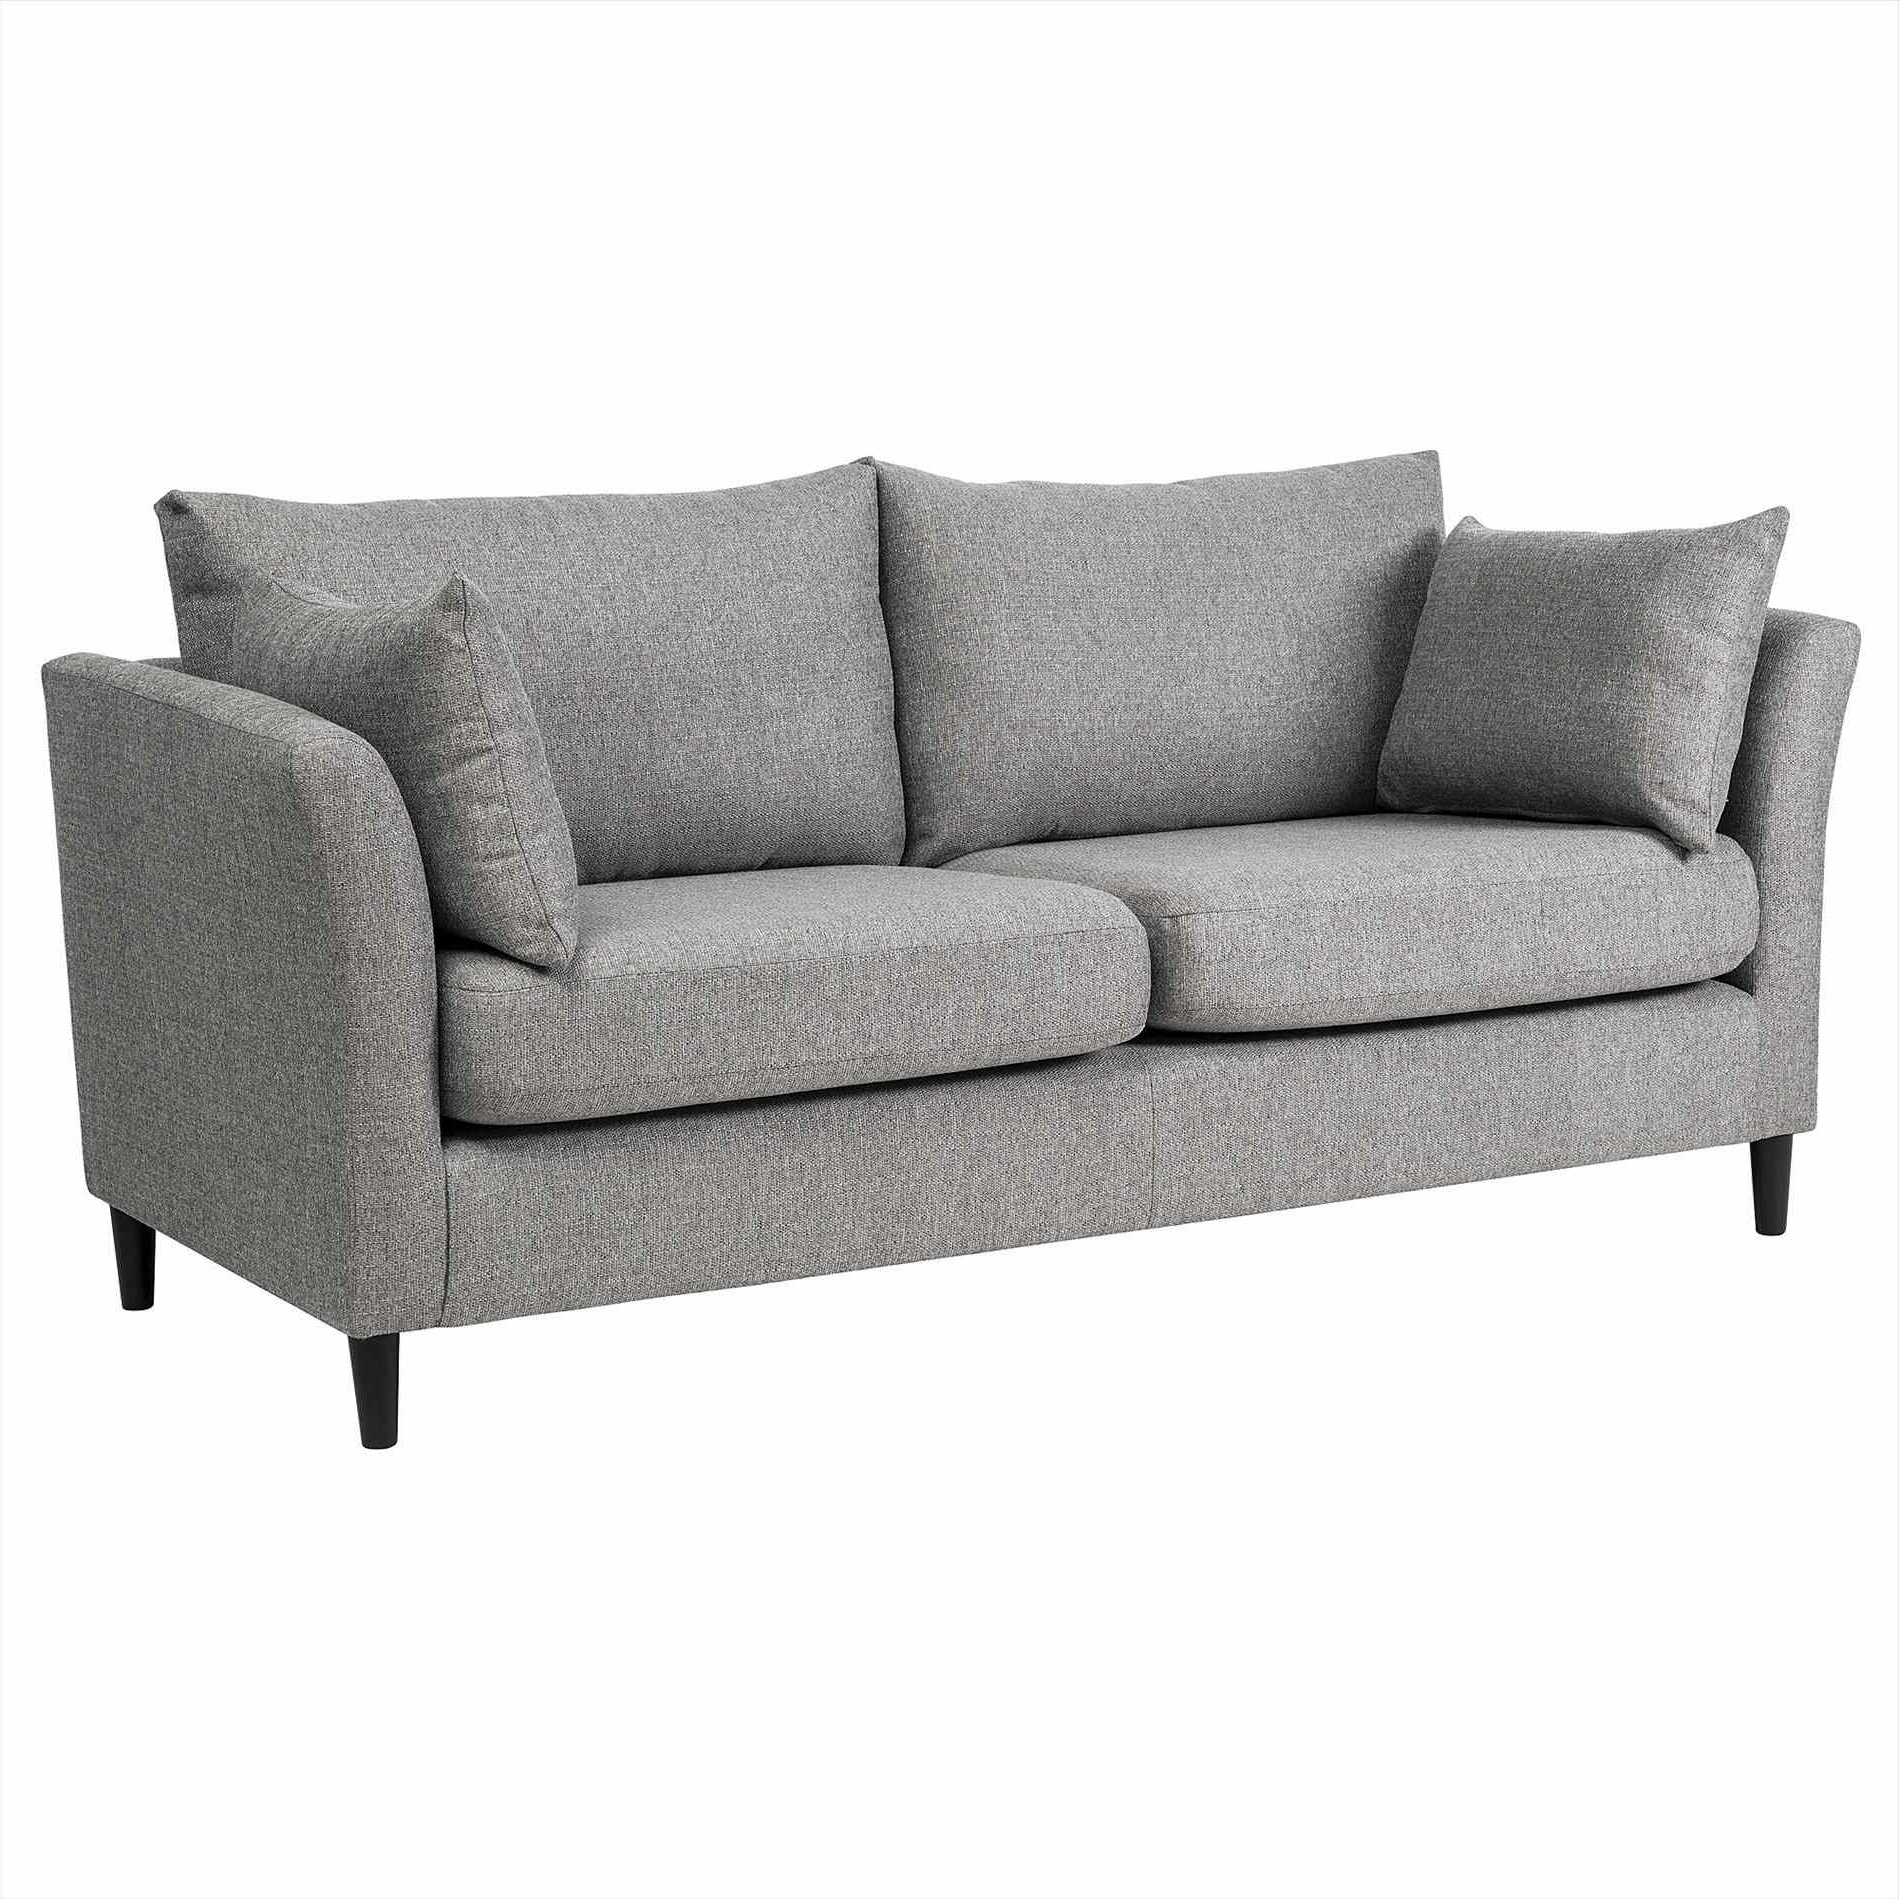 Best And Newest Ikea Small Sofas In Sofa : Ikea Small Sofa Stunning Photo Inspirations Beds For Space (View 1 of 20)